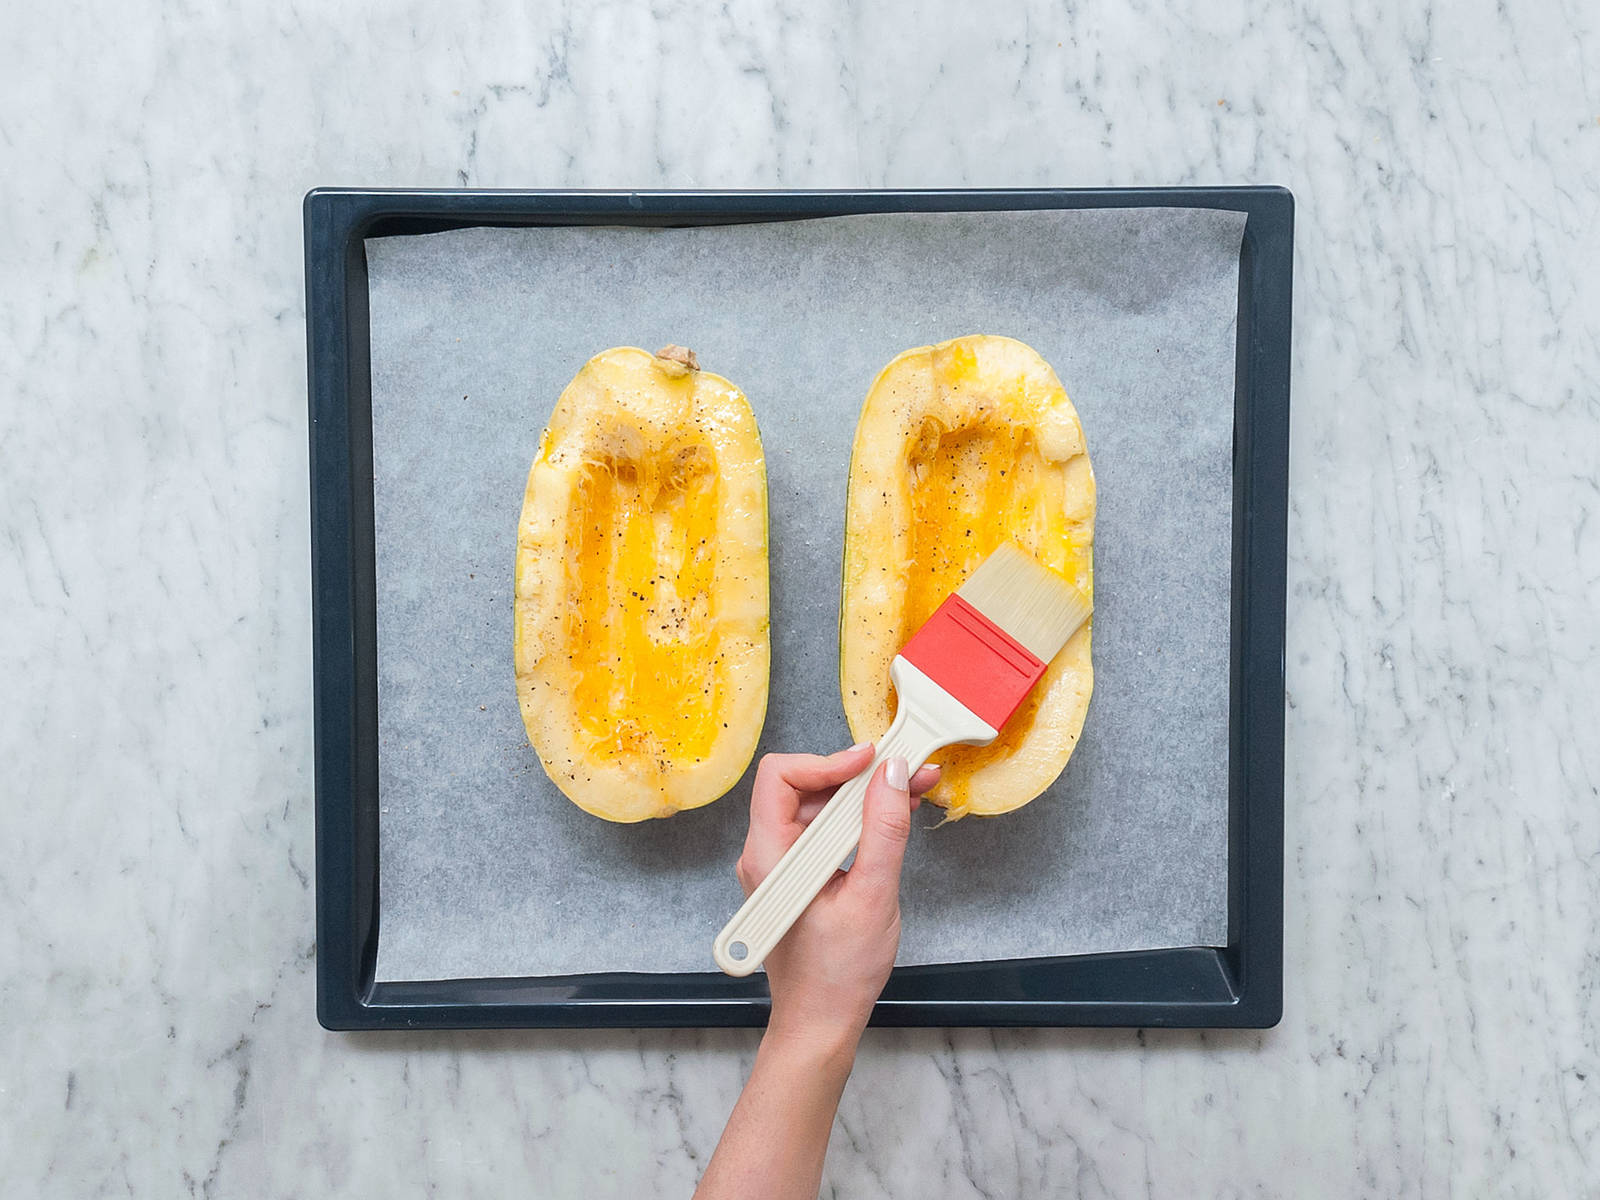 Pre-heat oven to 200°C/390°F. Halve spaghetti squash lengthwise and remove the core with a spoon. Transfer squash to a parchment-lined baking sheet. Brush with olive oil and season with salt and pepper. Bake for approx. 40 min.